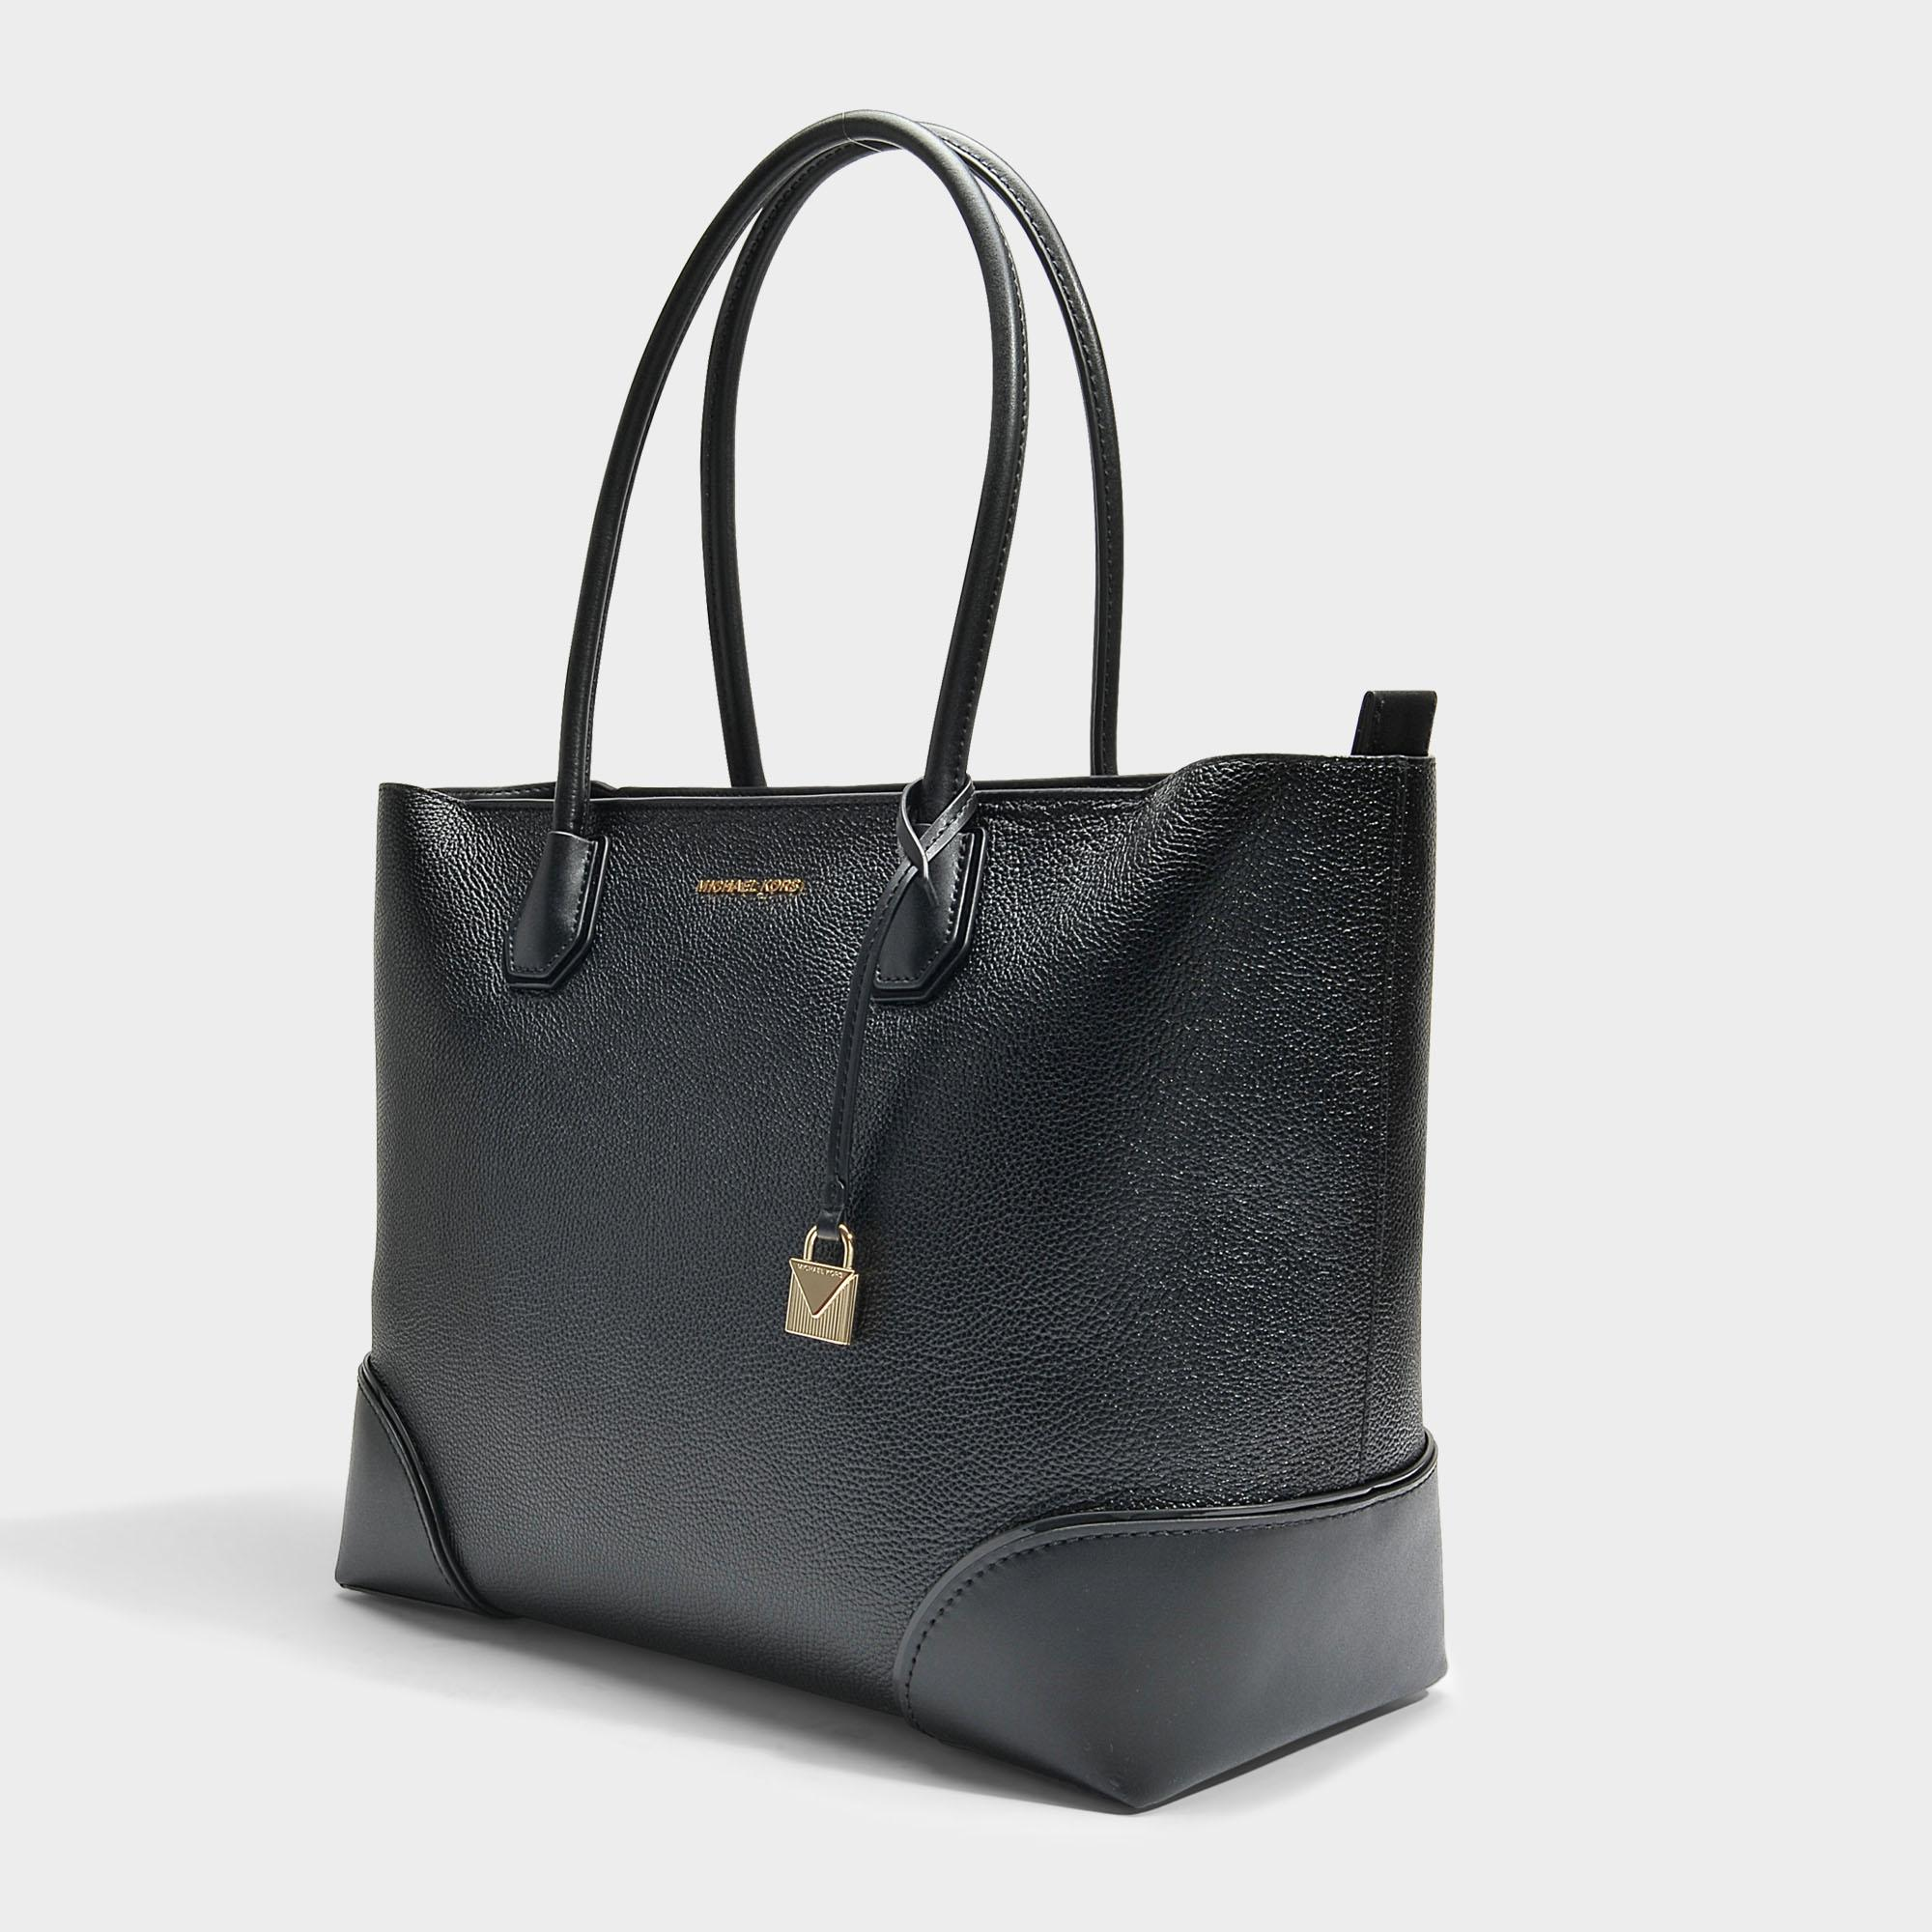 89adcbb4e7 MICHAEL Michael Kors - Mercer Gallery Large East-west Top Zip Tote Bag In  Black